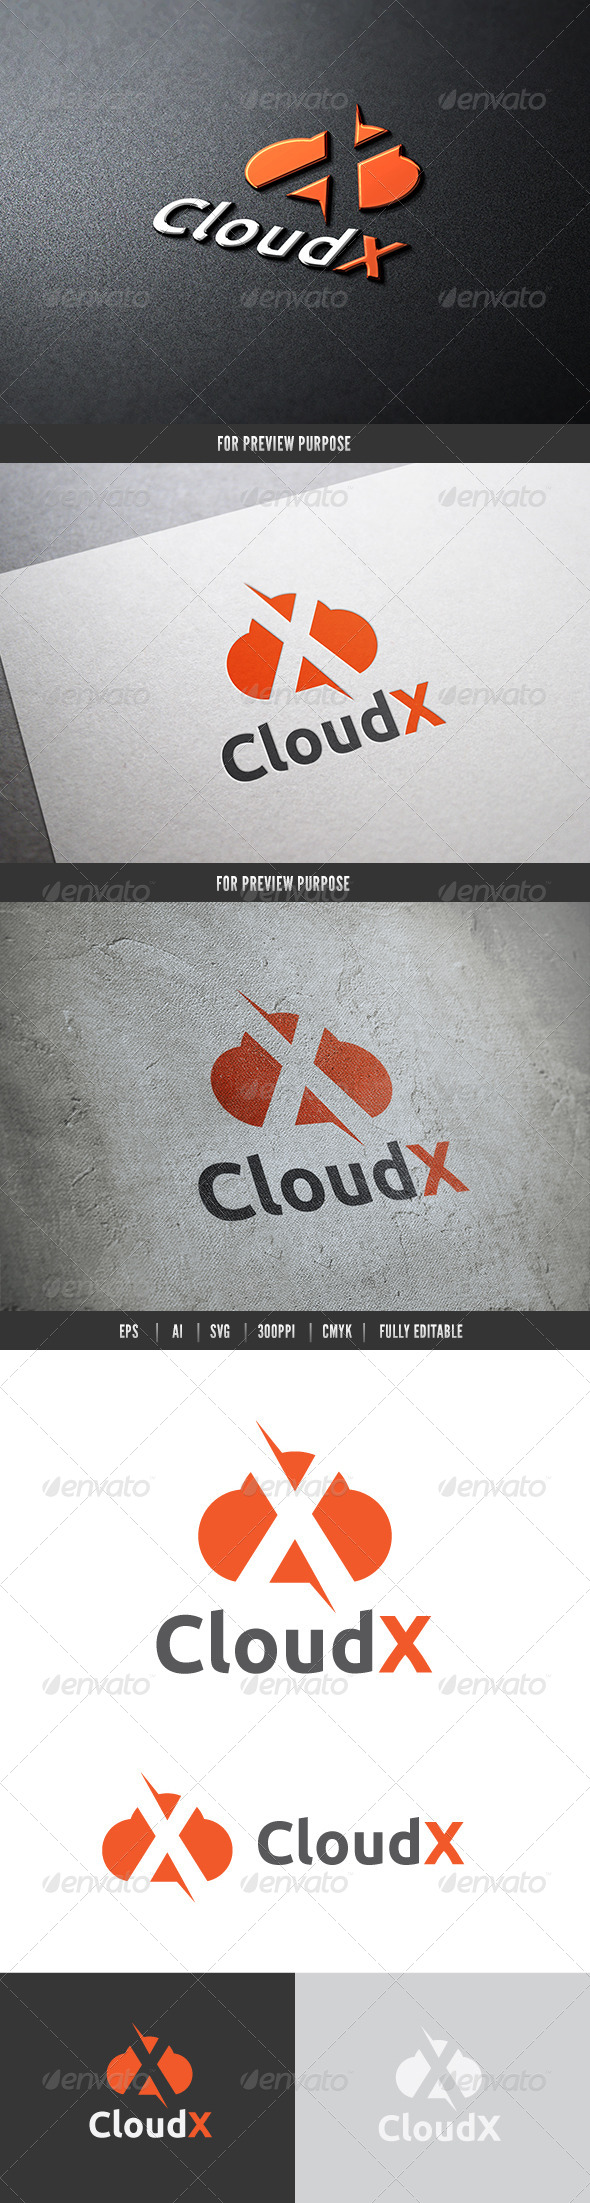 GraphicRiver Cloud X 6474434